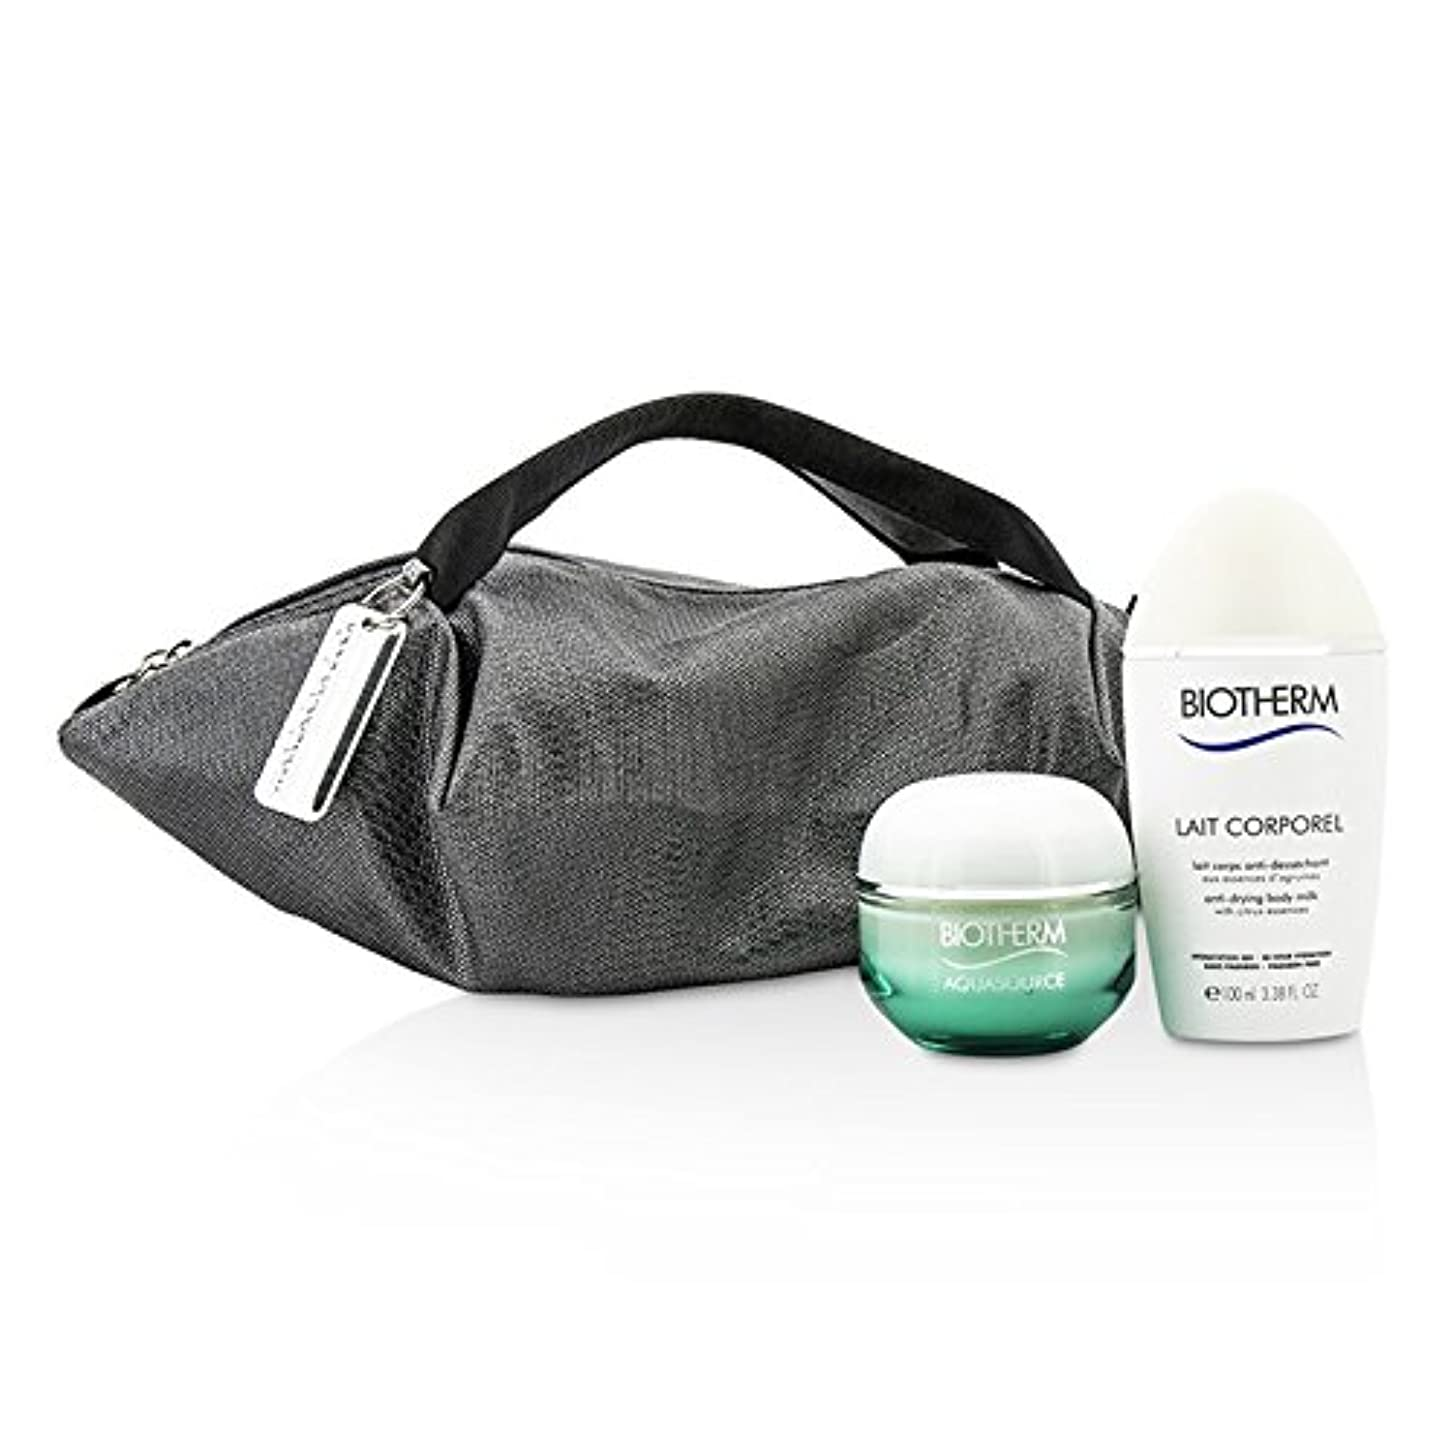 専ら入場パブビオテルム Aquasource & Body Care X Mandarina Duck Coffret: Cream N/C 50ml + Anti-Drying Body Care 100ml + Handle Bag...